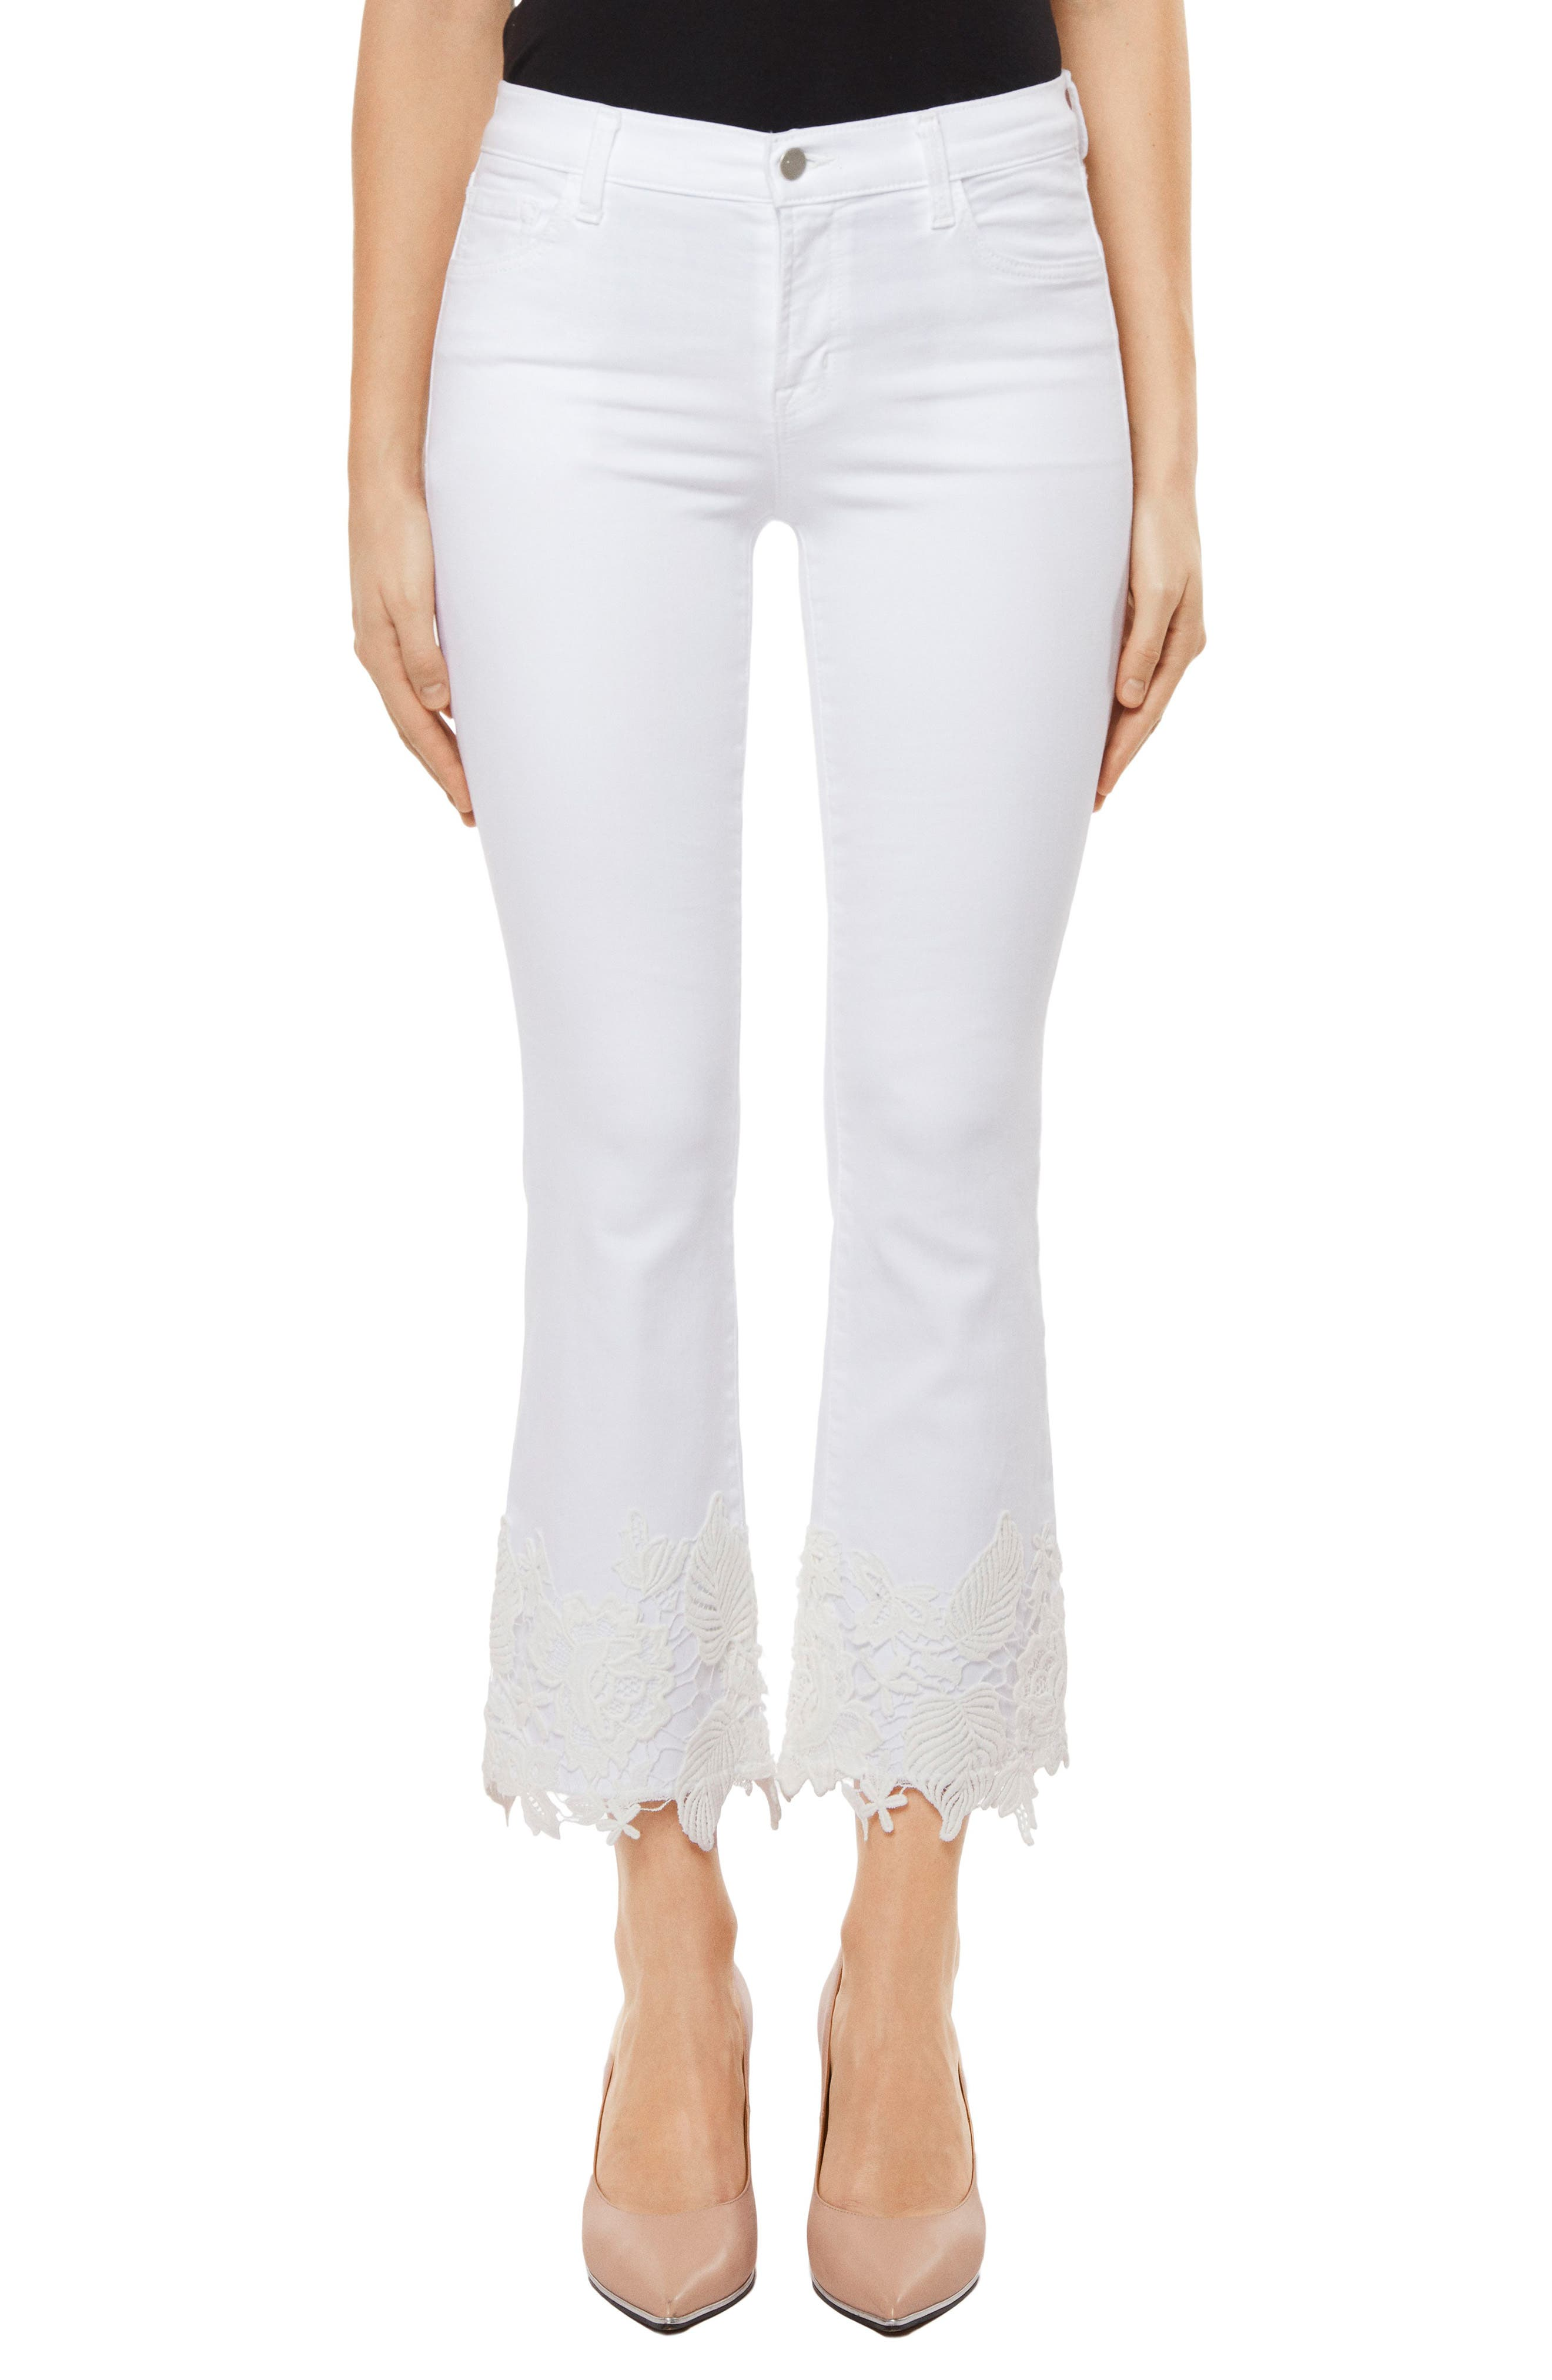 Main Image - J Brand Selena Crop Bootcut Jeans (White Lace)